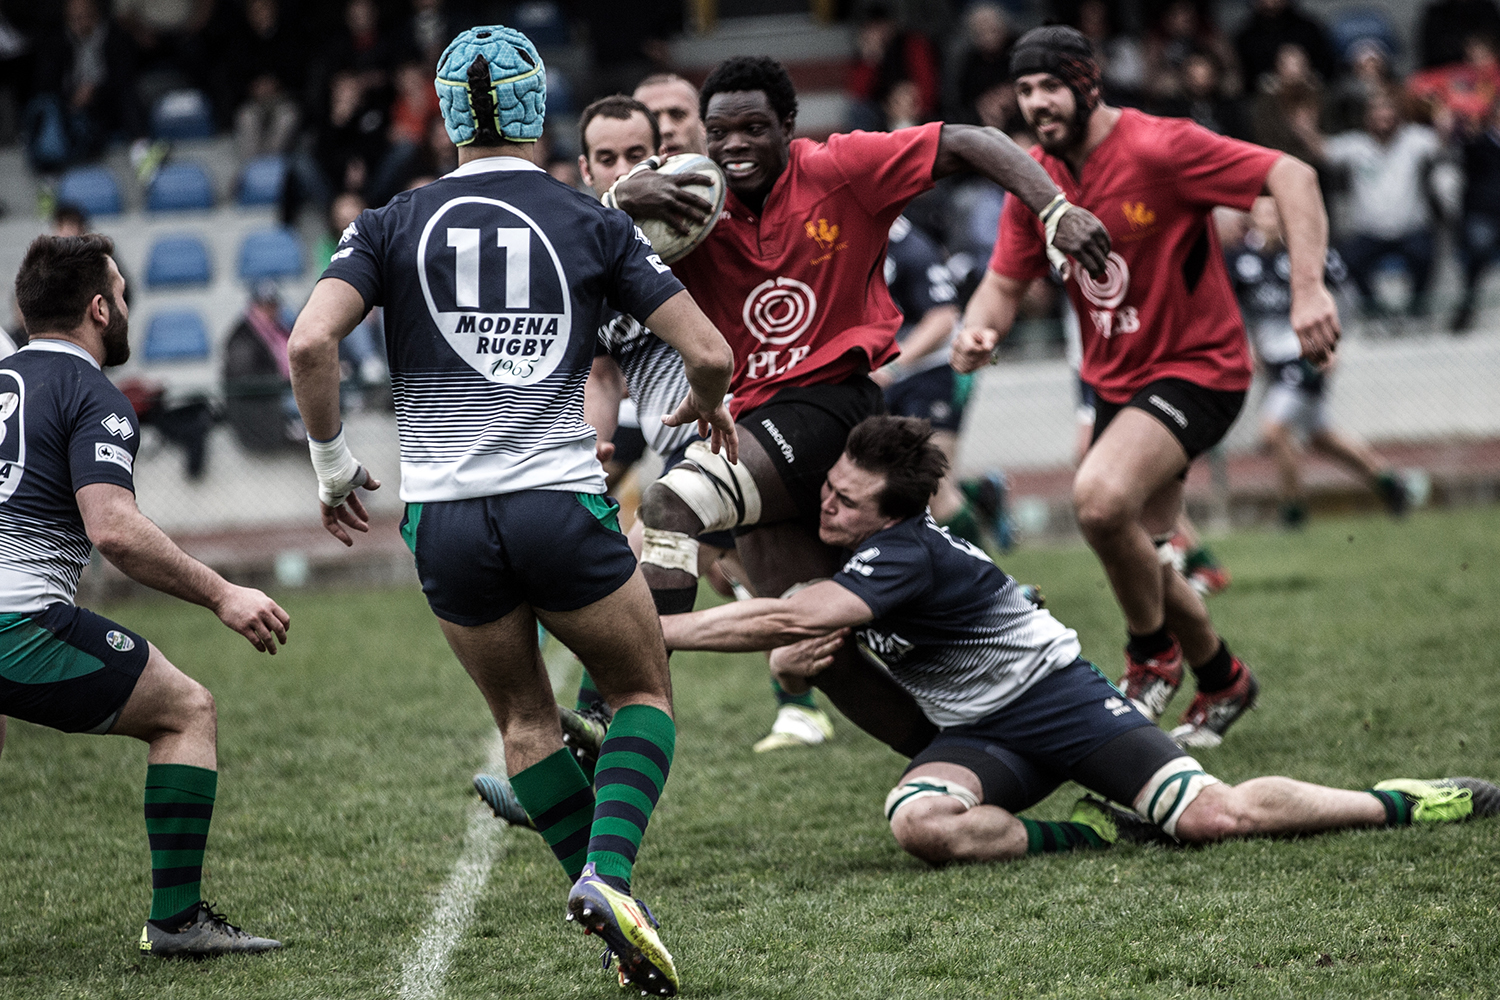 rugby_photograph_27.jpg